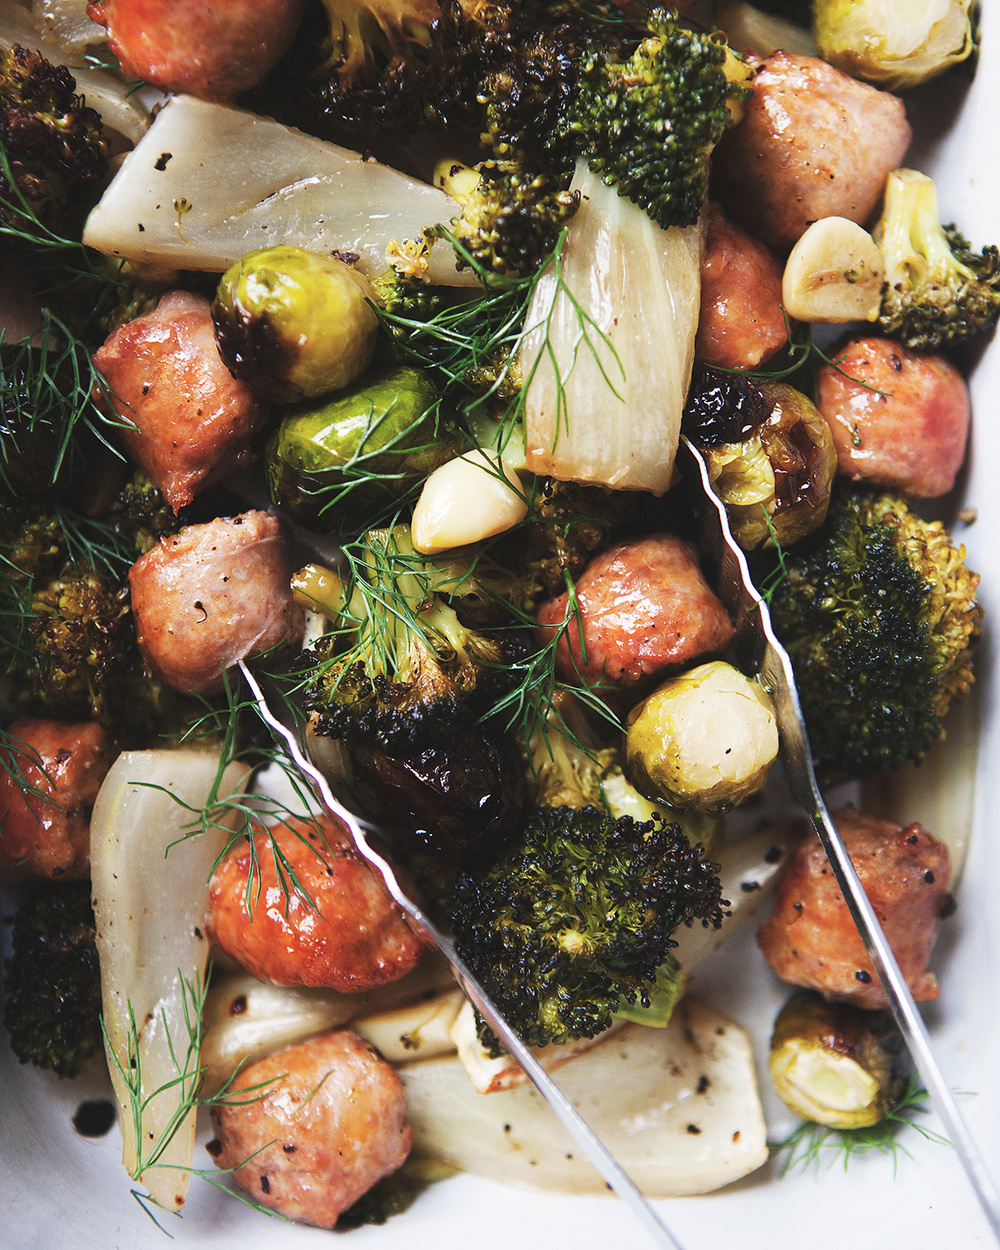 simple roasted fennel and sausage with brussels sprouts and broccoli